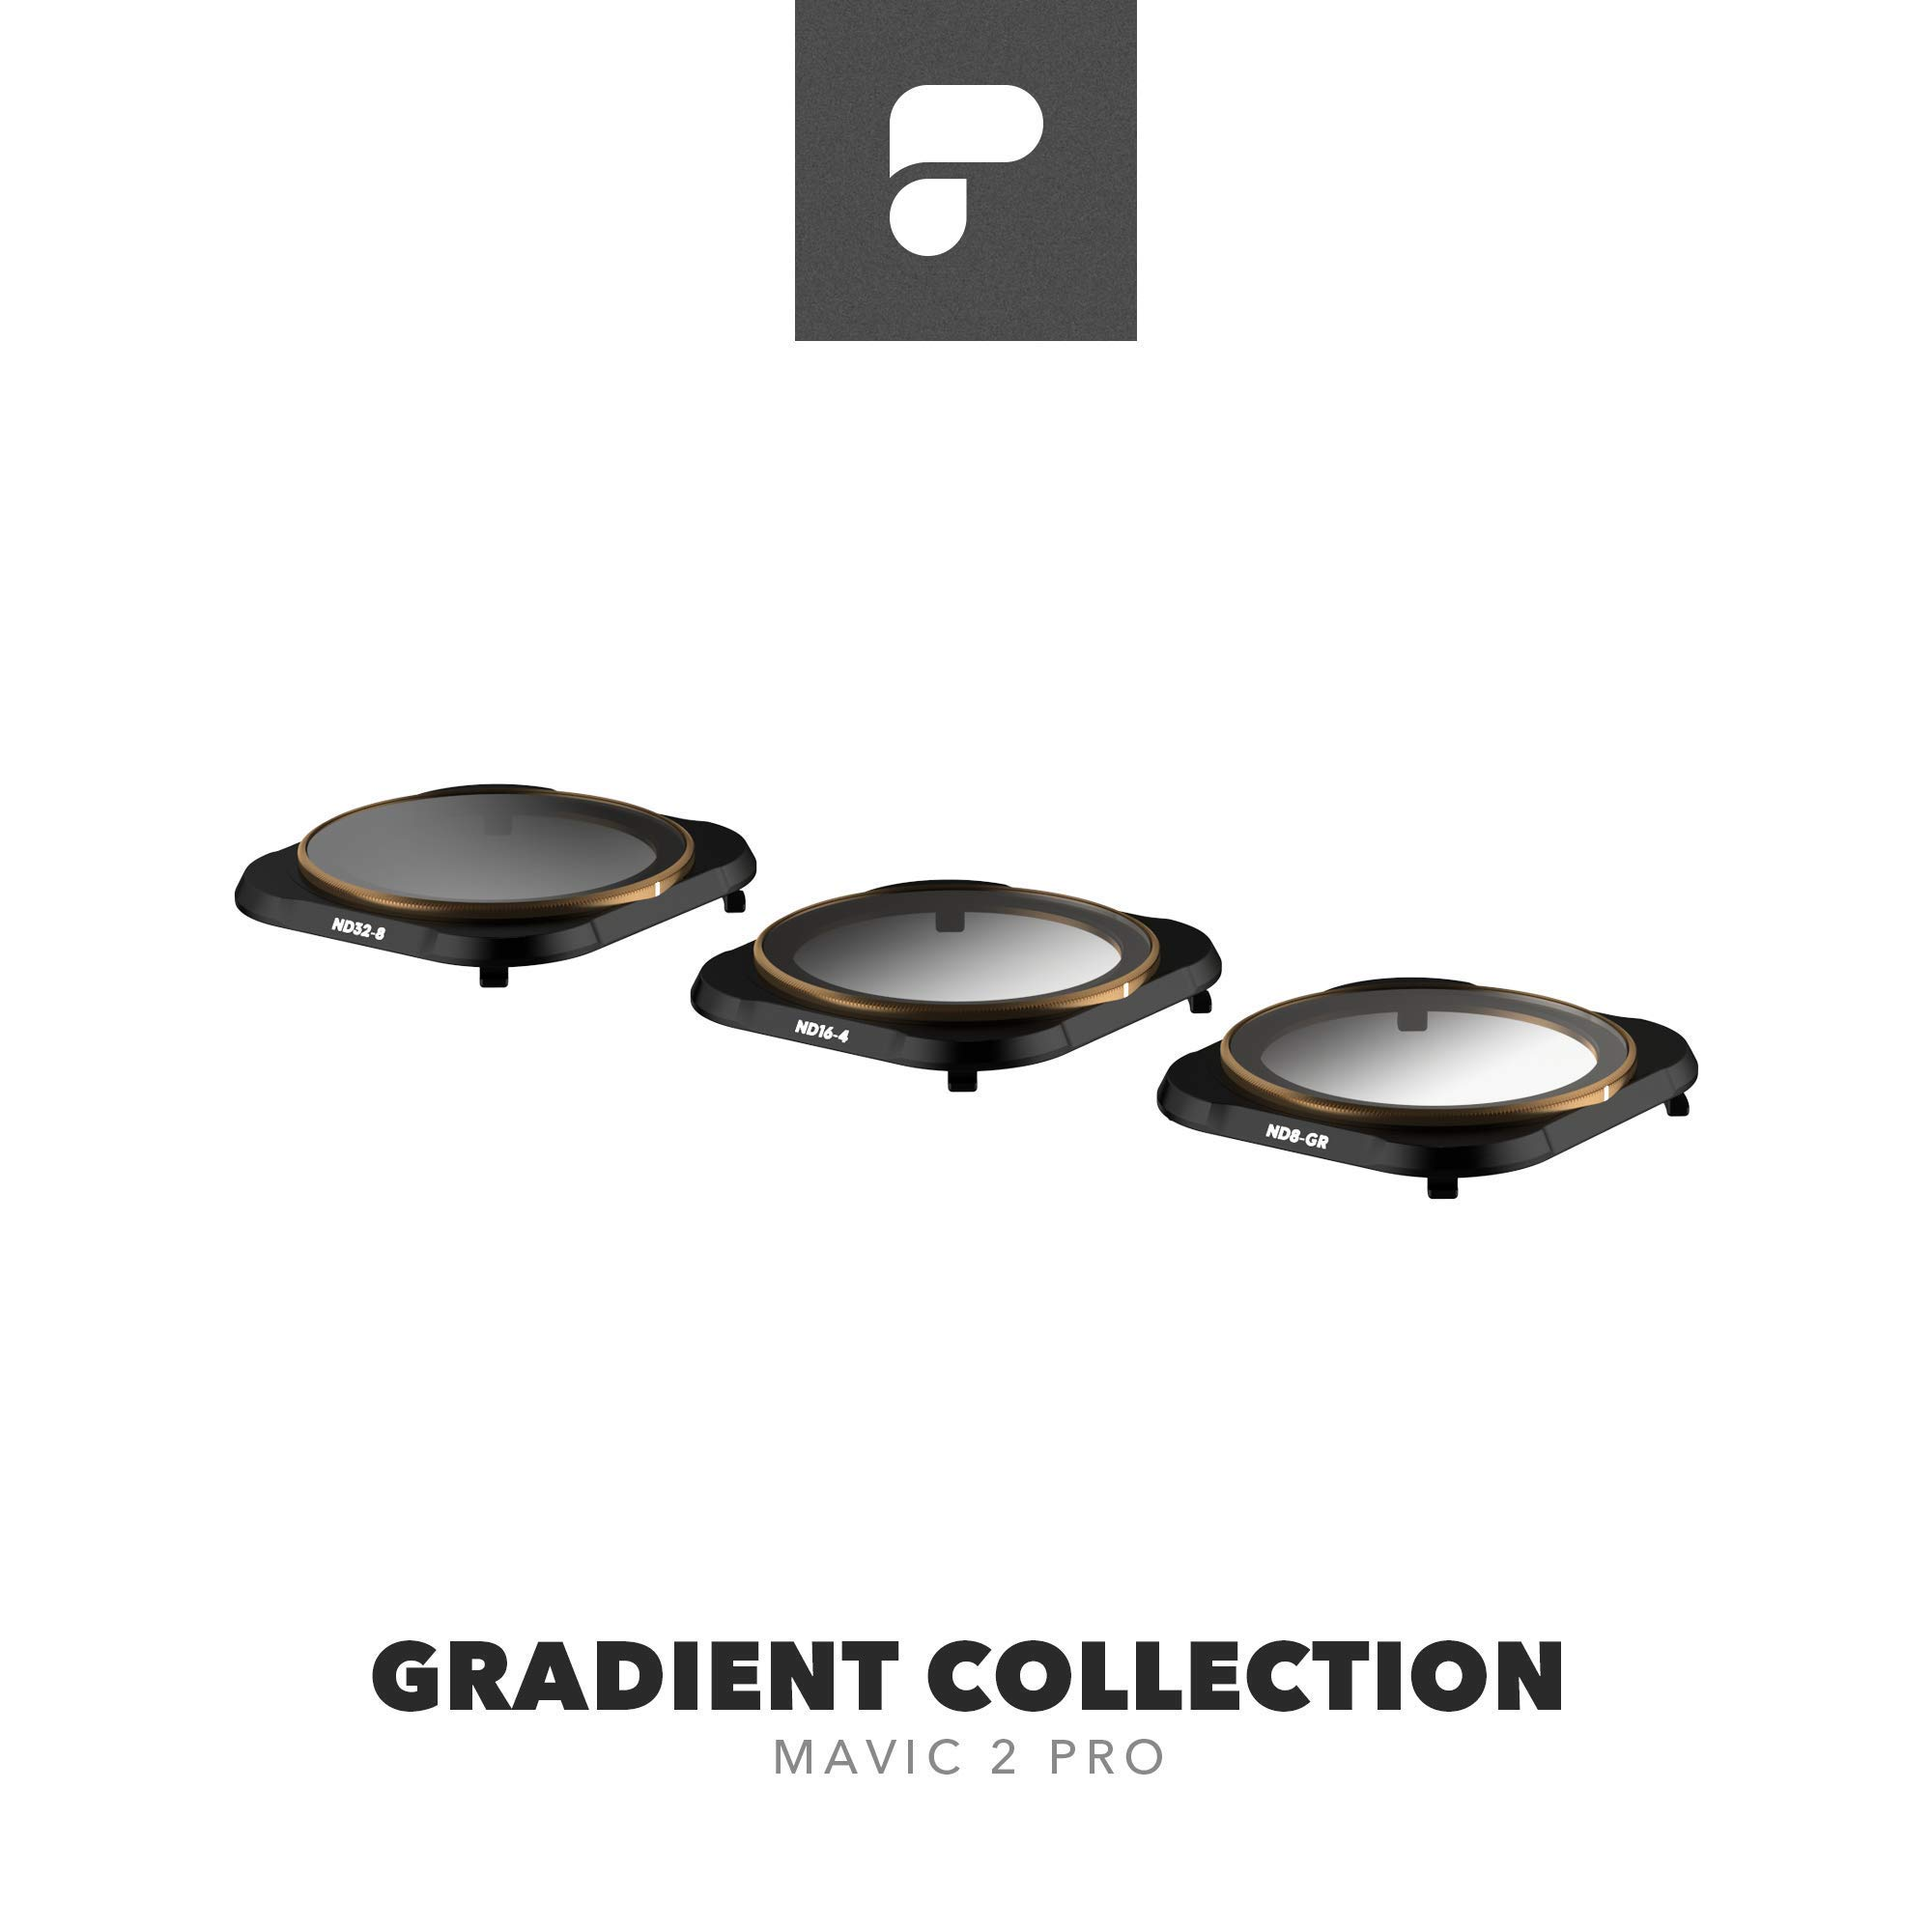 PolarPro Gradient Collection (ND8-GR, ND16-4, ND32-8 Filters) Cinema Series for DJI Mavic Pro 2 Filters by PolarPro